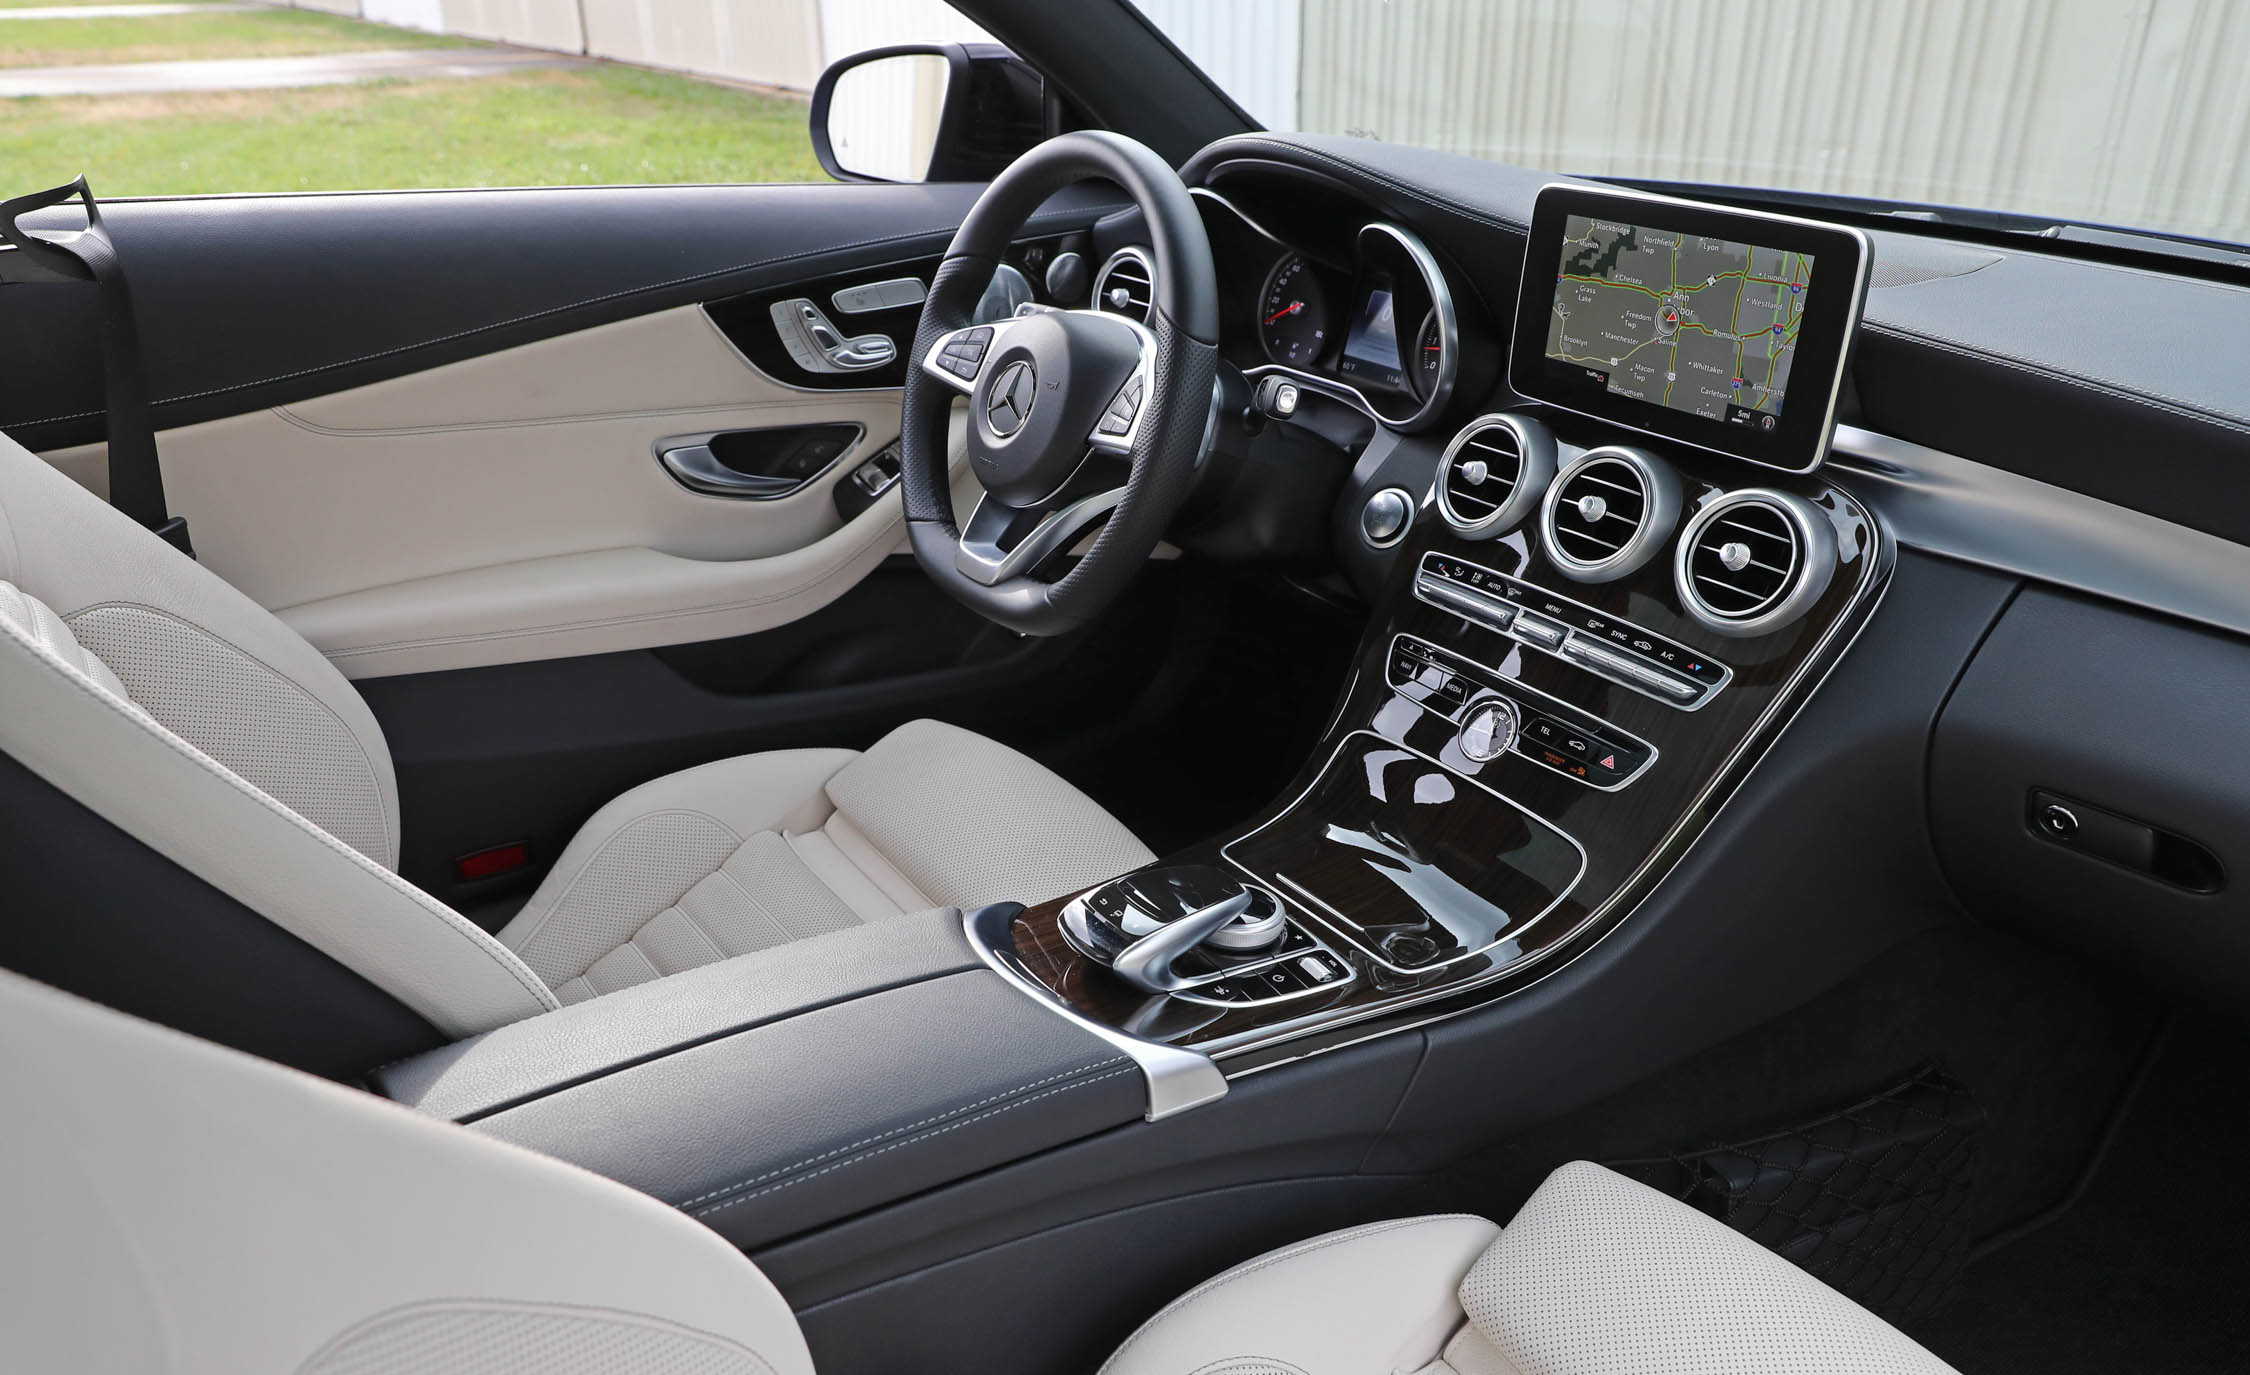 2017 Mercedes Benz C300 4MATIC Coupe Interior Cockpit (View 22 of 44)